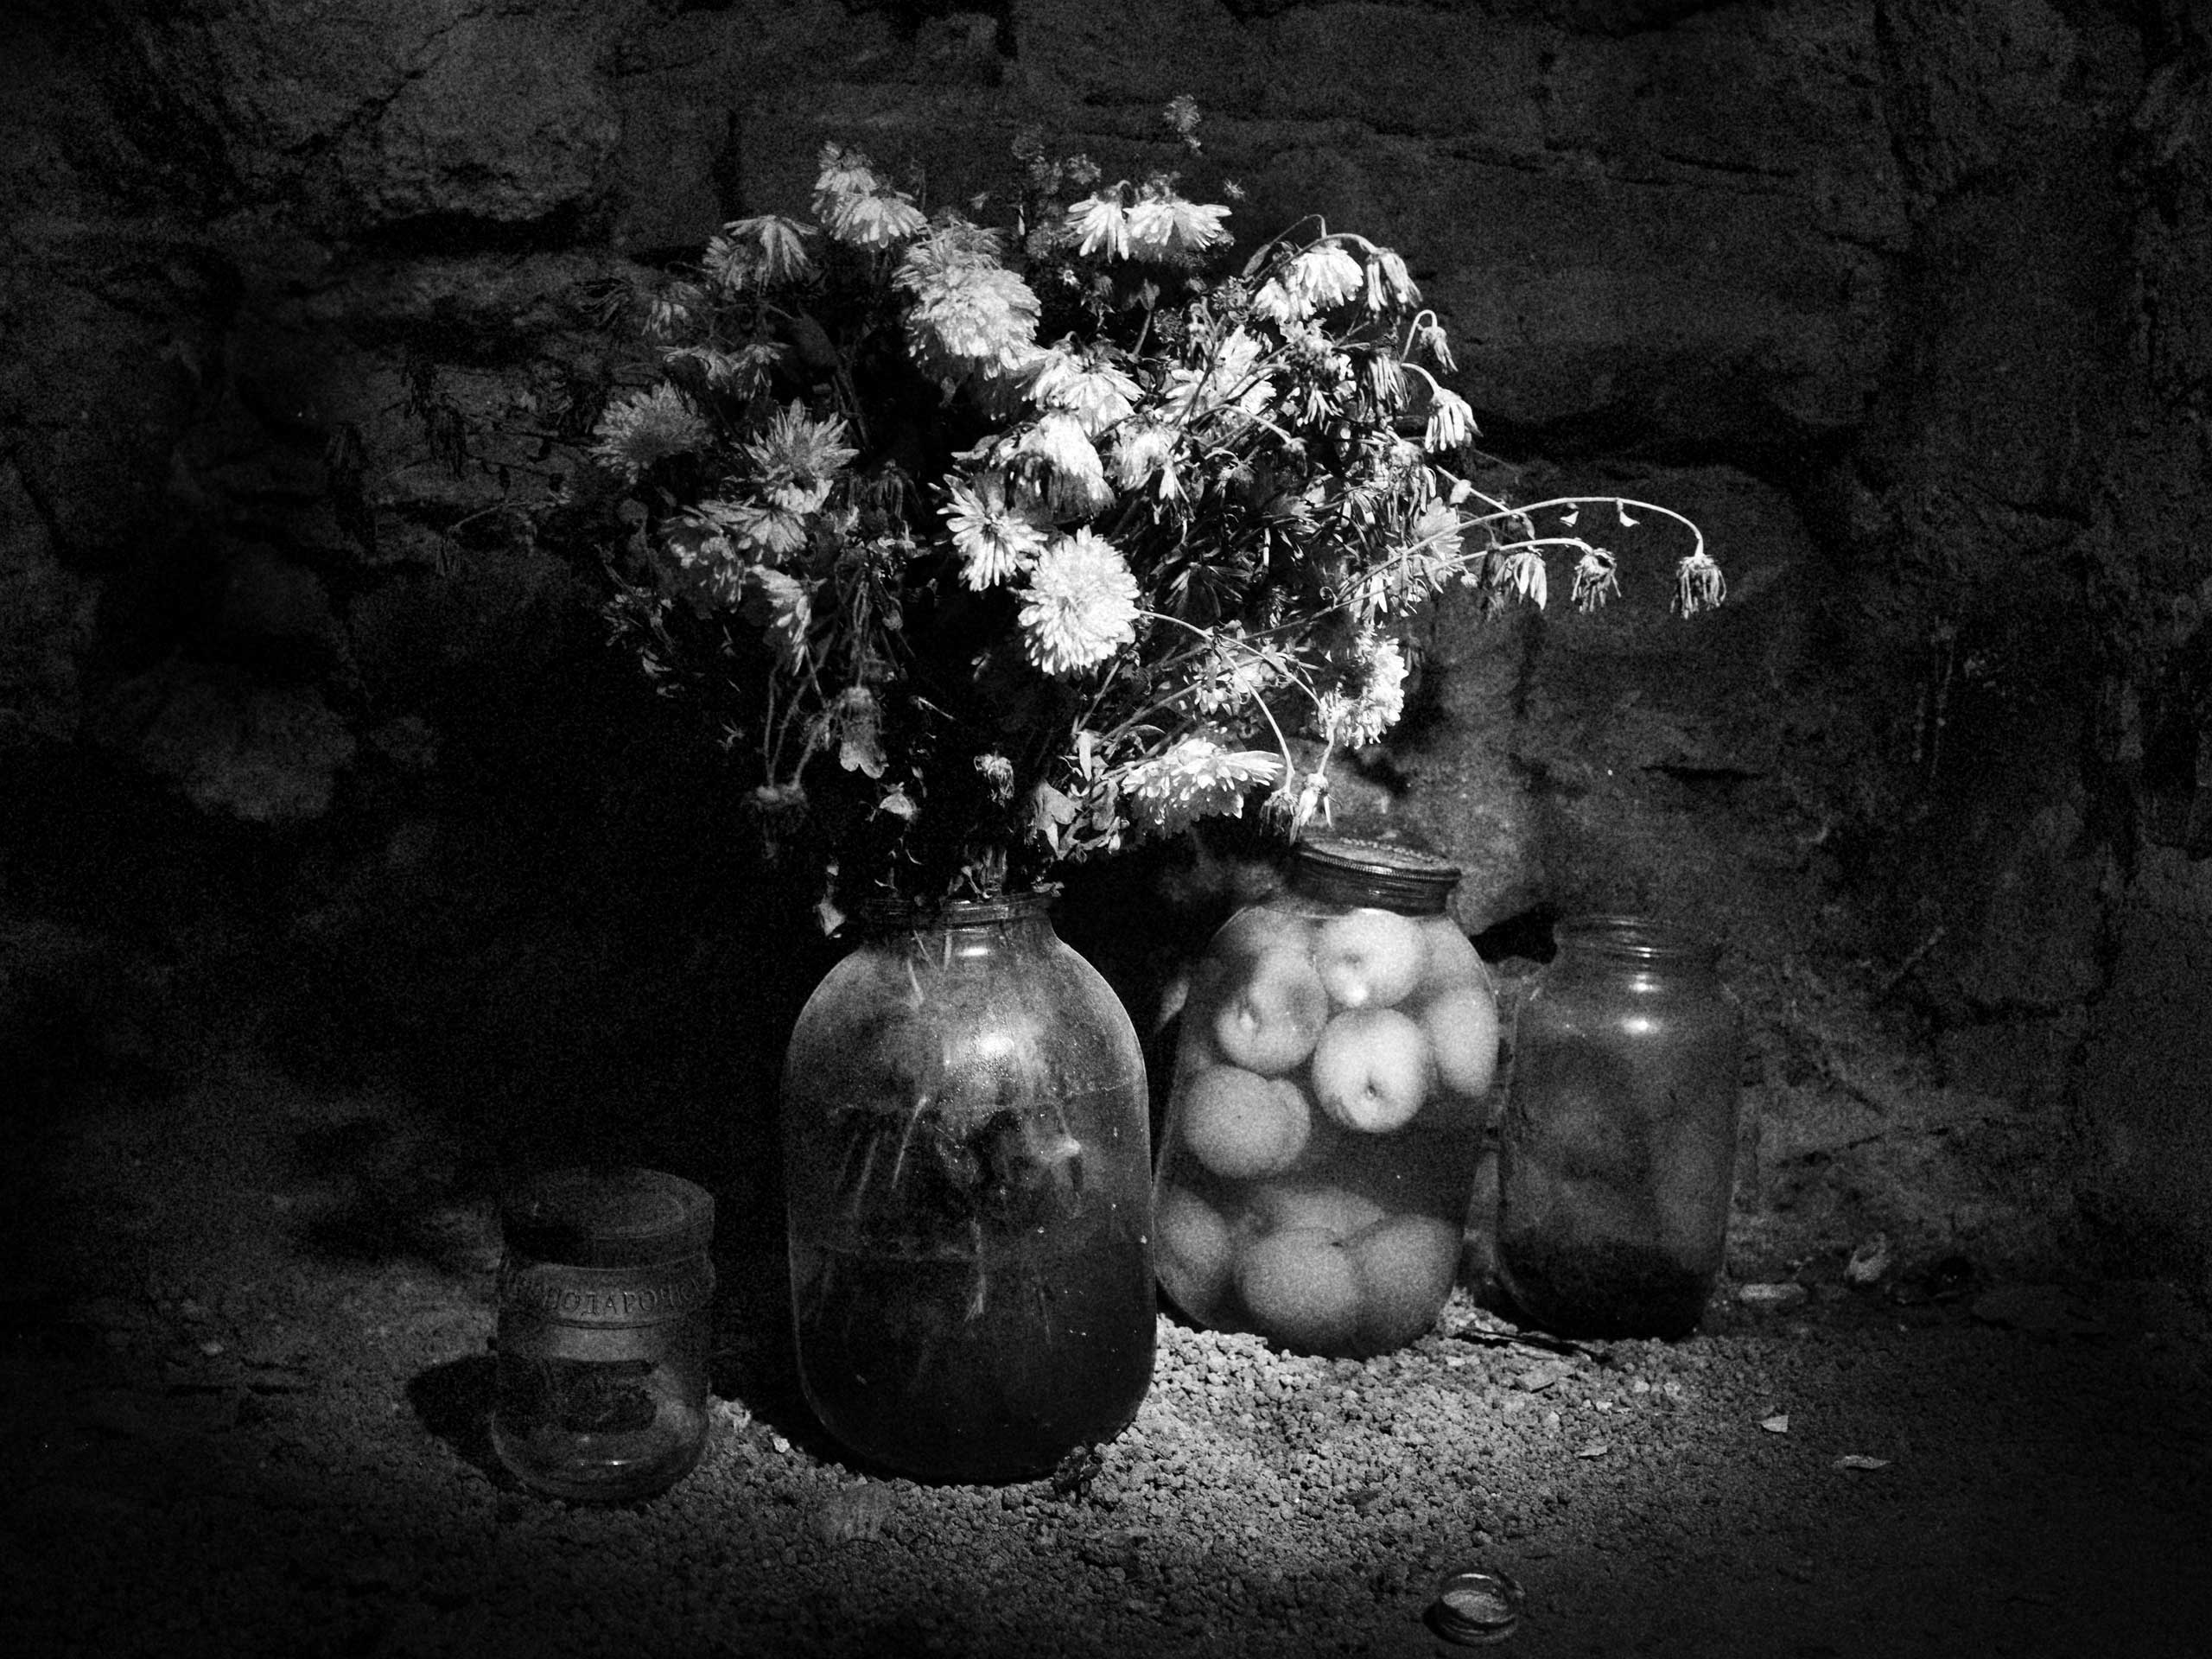 Preserved fruits and a jar of flowers are seen in a hollow doubling as a pantry in the Petrovsky district shelter, located under the Town Hall in the village. As winter approaches, many of the residents are willing an end to the conflict so they can return home. Donetsk. Petrovsky District, Ukraine. Nov. 1, 2014.